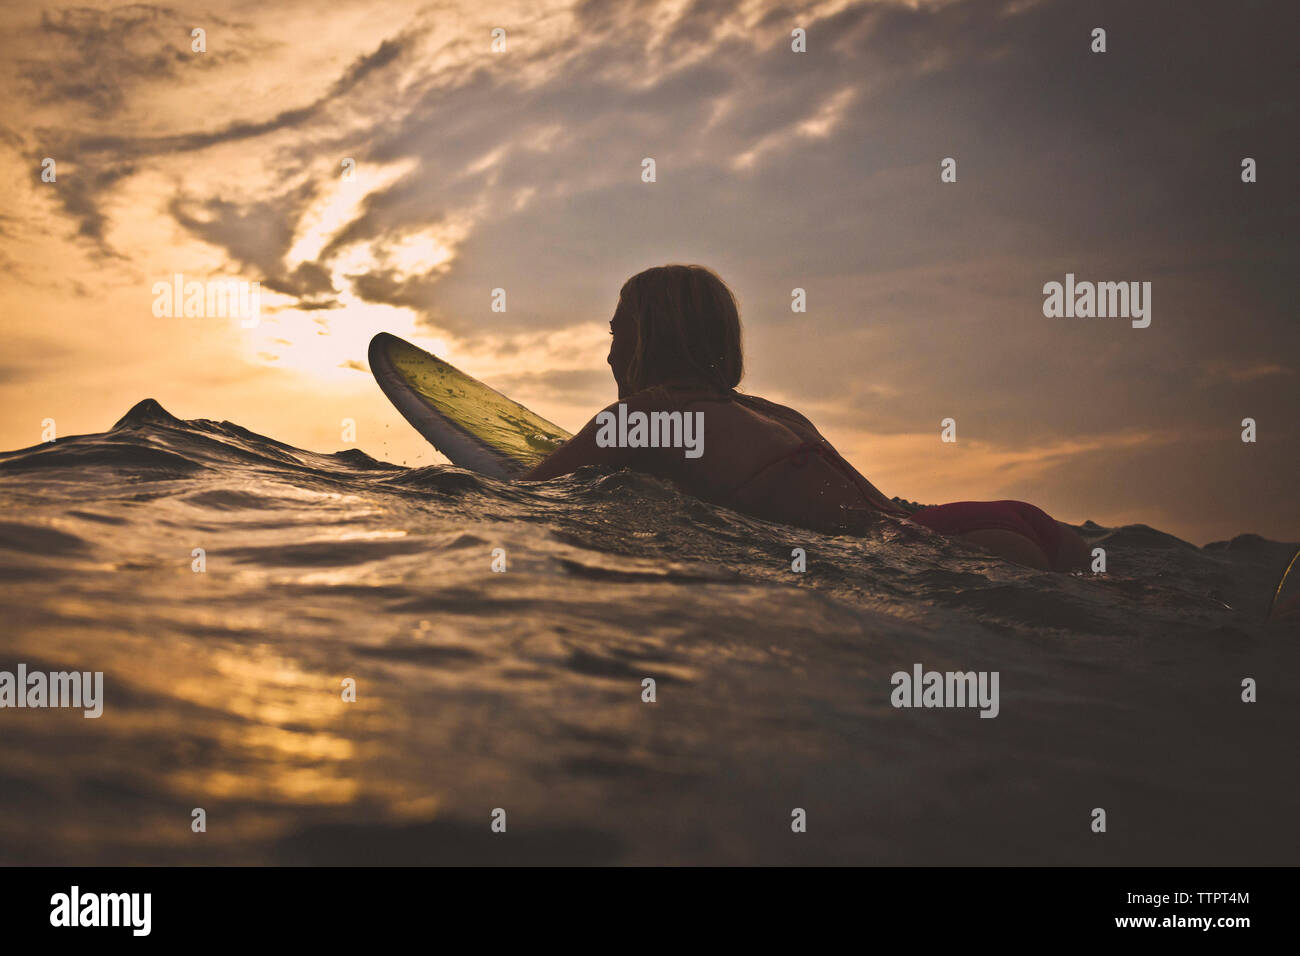 Woman surfing in sea against sky during sunset - Stock Image